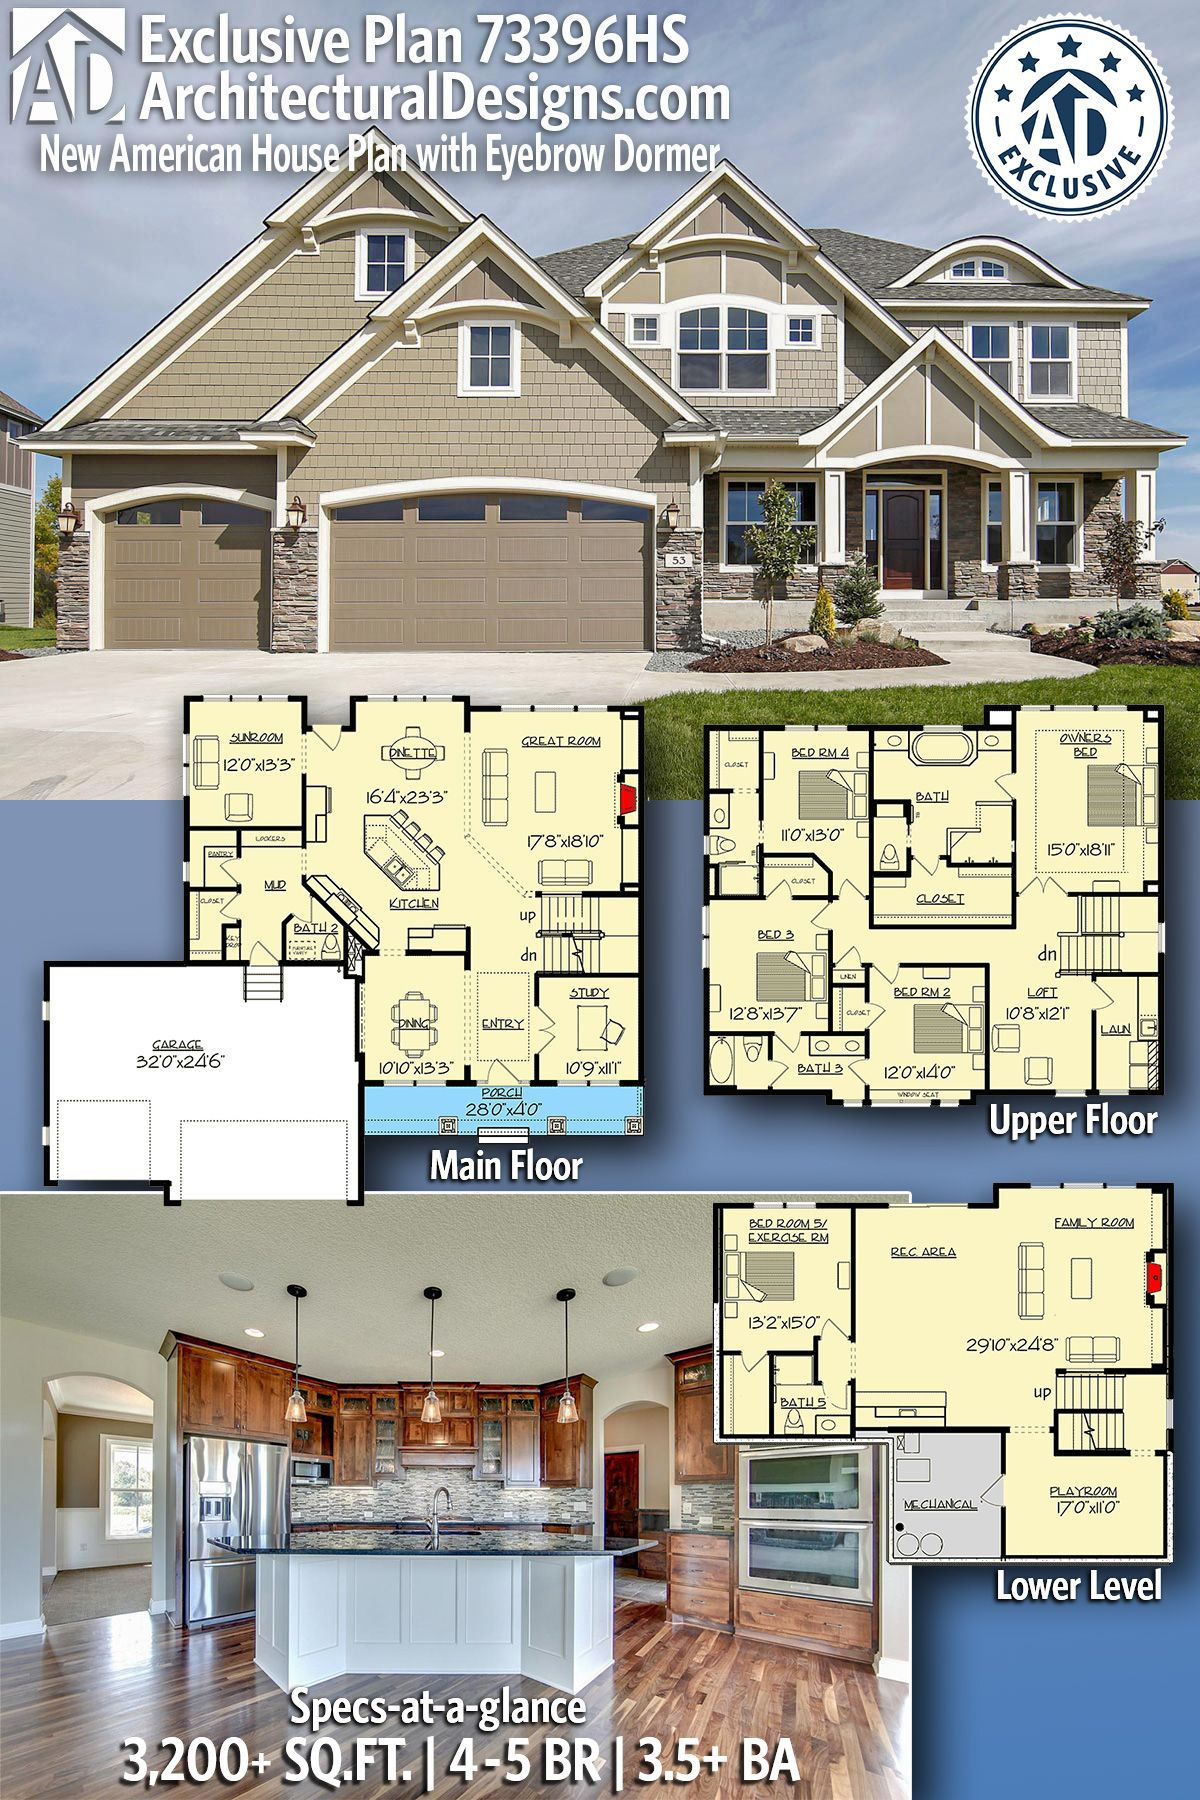 Floor Plans for New Houses Beautiful Plan Hs Exclusive New American House Plan with Eyebrow